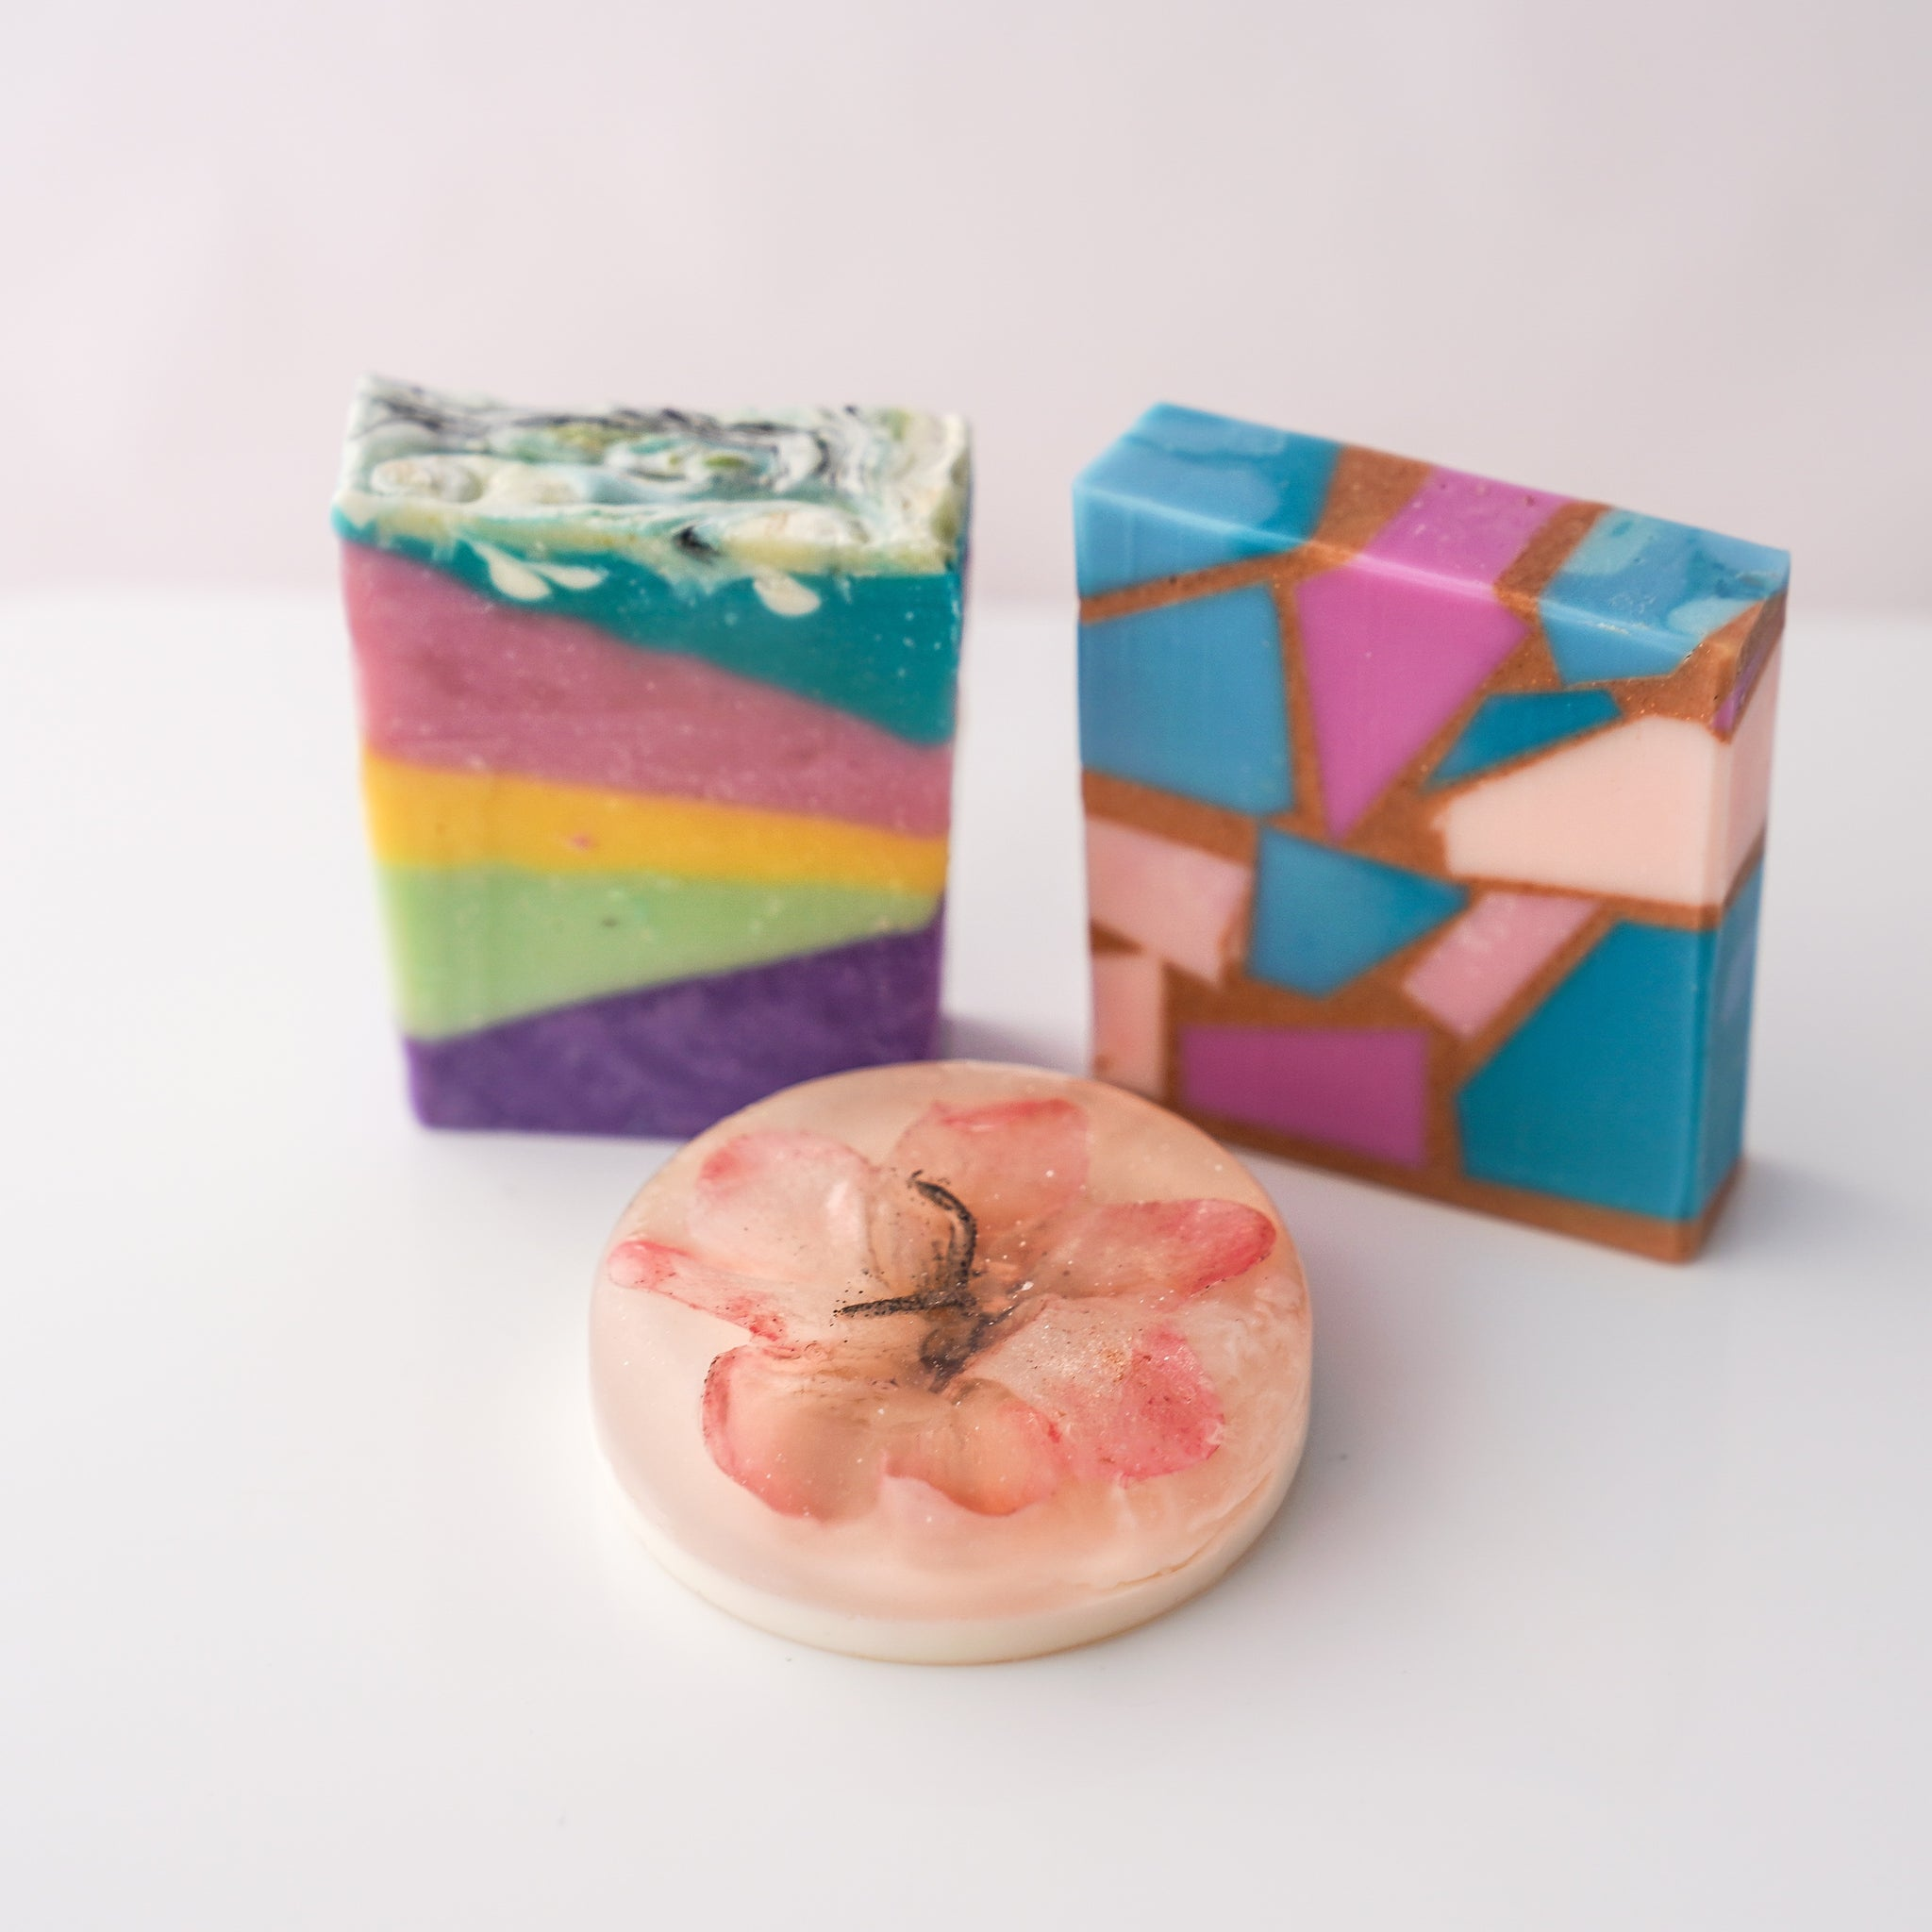 soap gift box 2021 woman spring natural soap spring soap gift set fancy soap handmade artisan vgift mothers day gift valentines Natural Bar Soap Set, Moisturizing Shea Butter & Coconut Oil, Artisan Hand & Body Bar Soap, Soften & Hydrate Dry Skin, Organic and Sustainable Ingredients